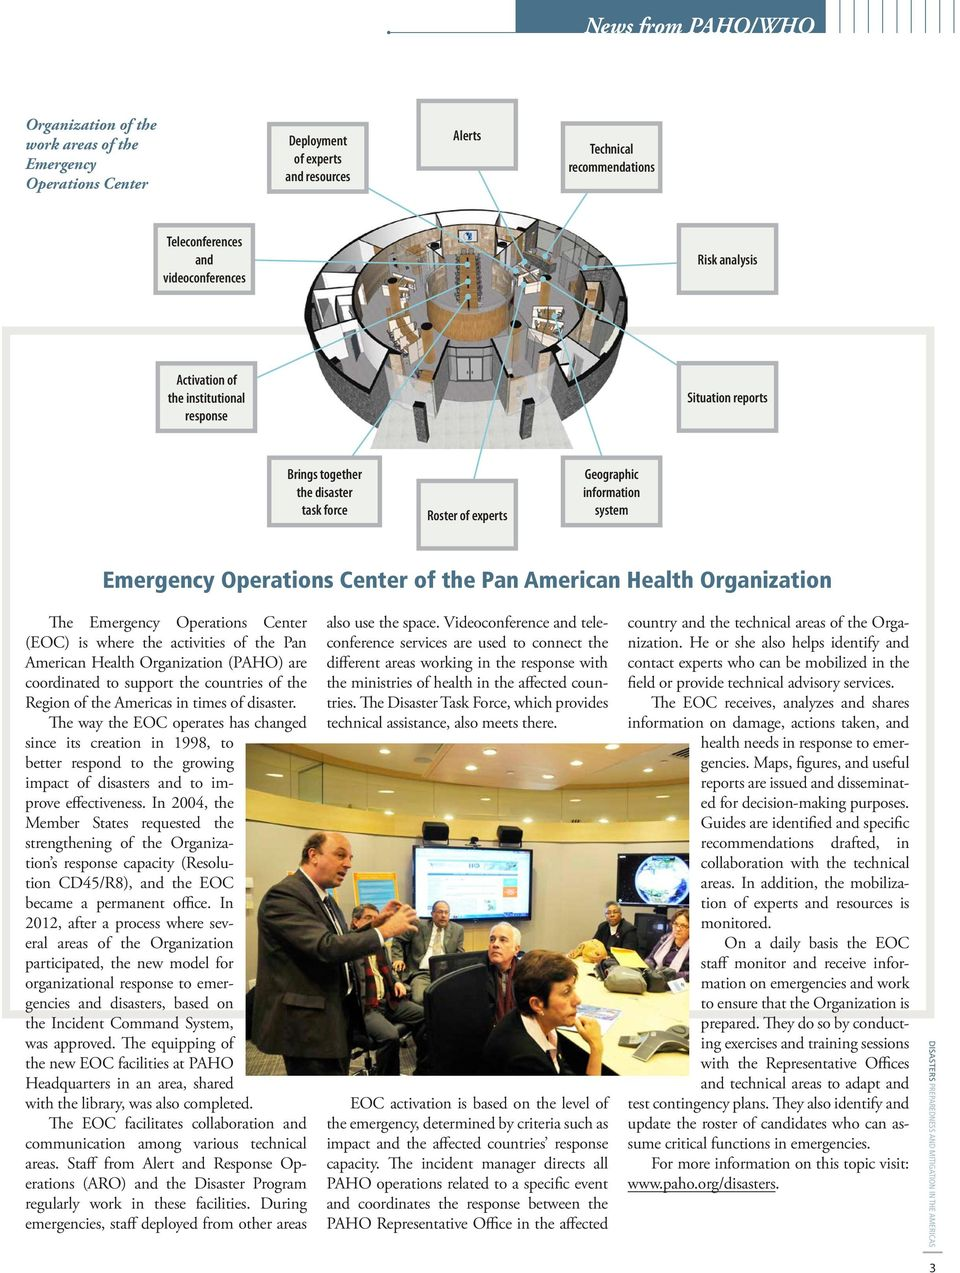 American Health Organization The Emergency Operations Center (EOC) is where the activities of the Pan American Health Organization (PAHO) are coordinated to support the countries of the Region of the